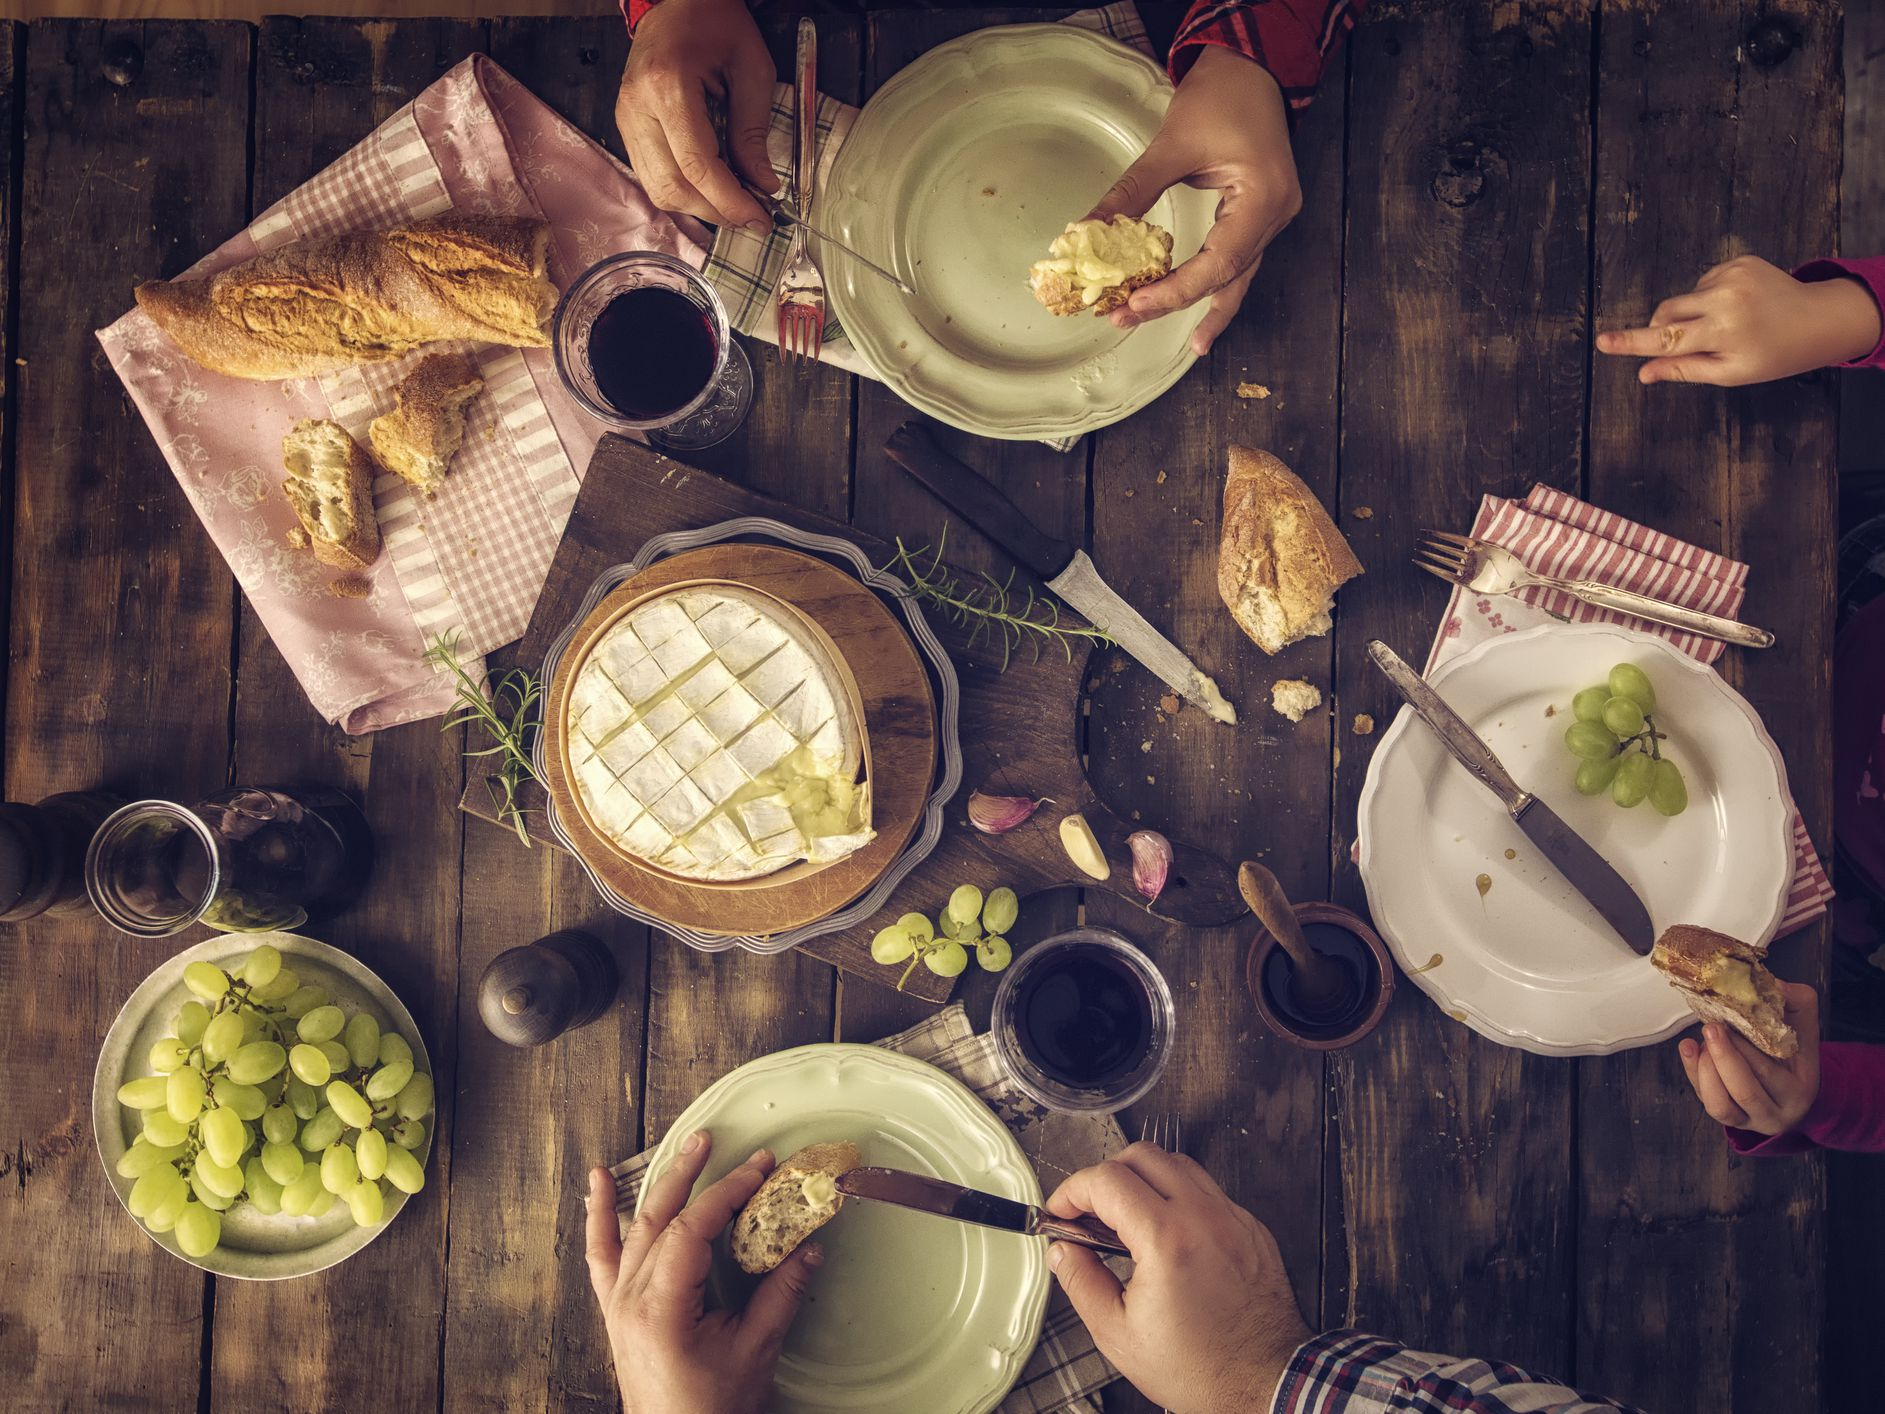 The 7 Courses Of A Formal French Meal